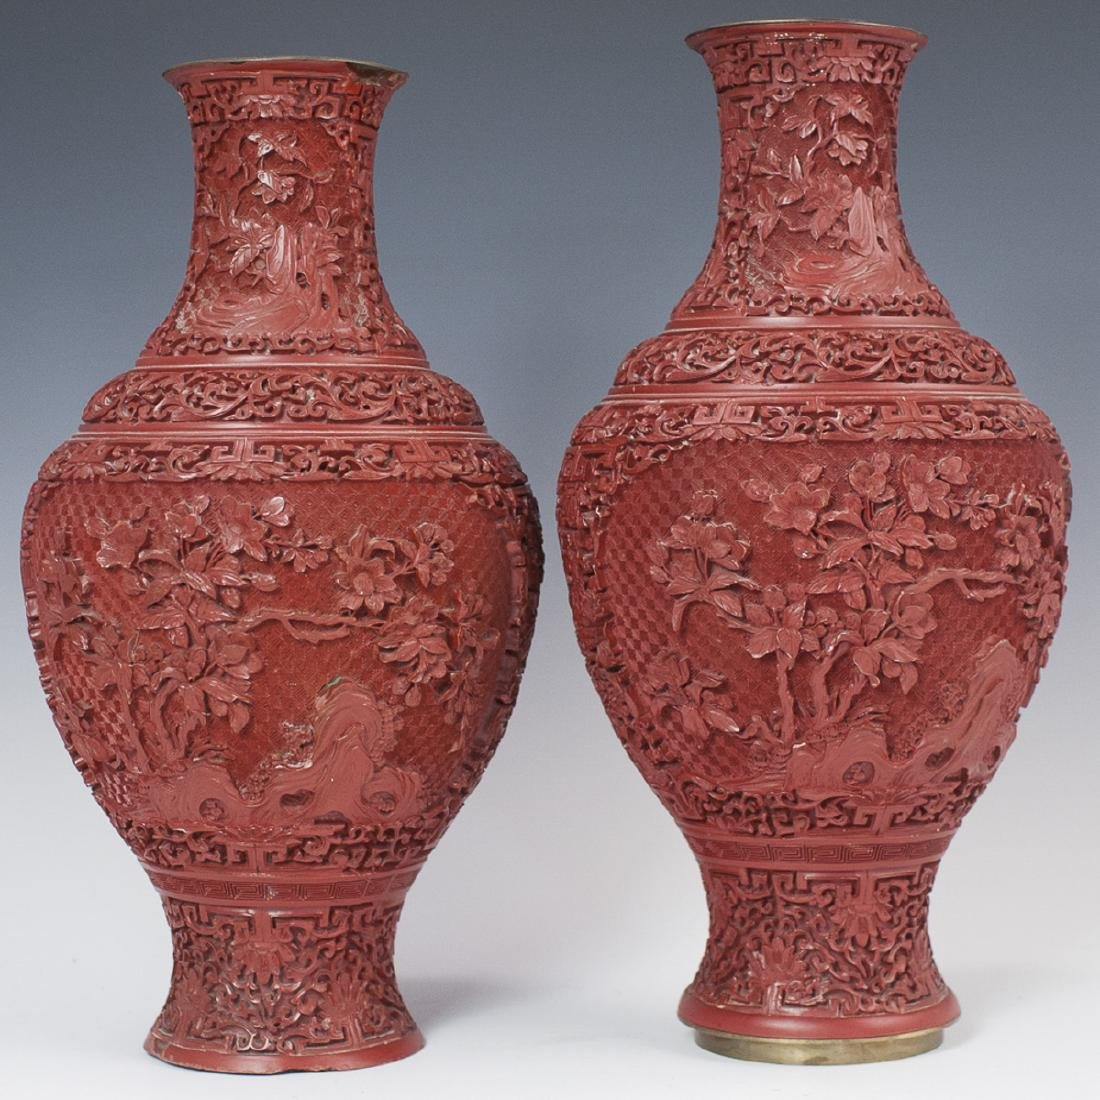 Carved Chinese Cinnabar Vases